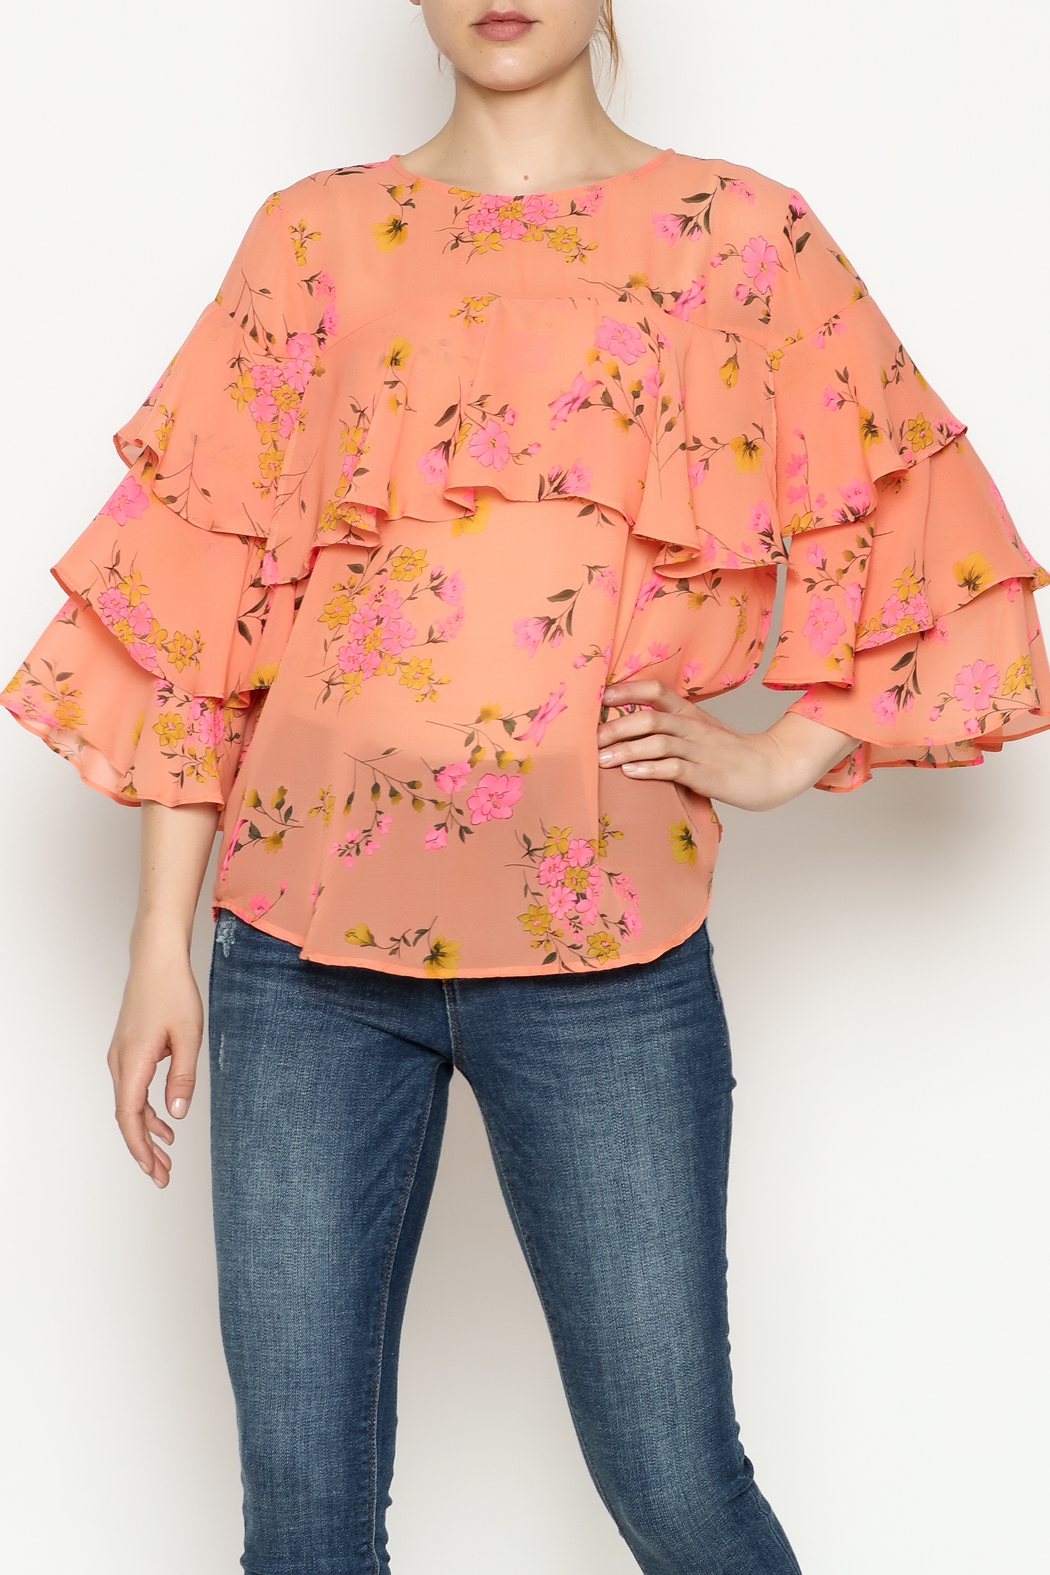 Cousin Earl Peach Floral Top - Front Cropped Image